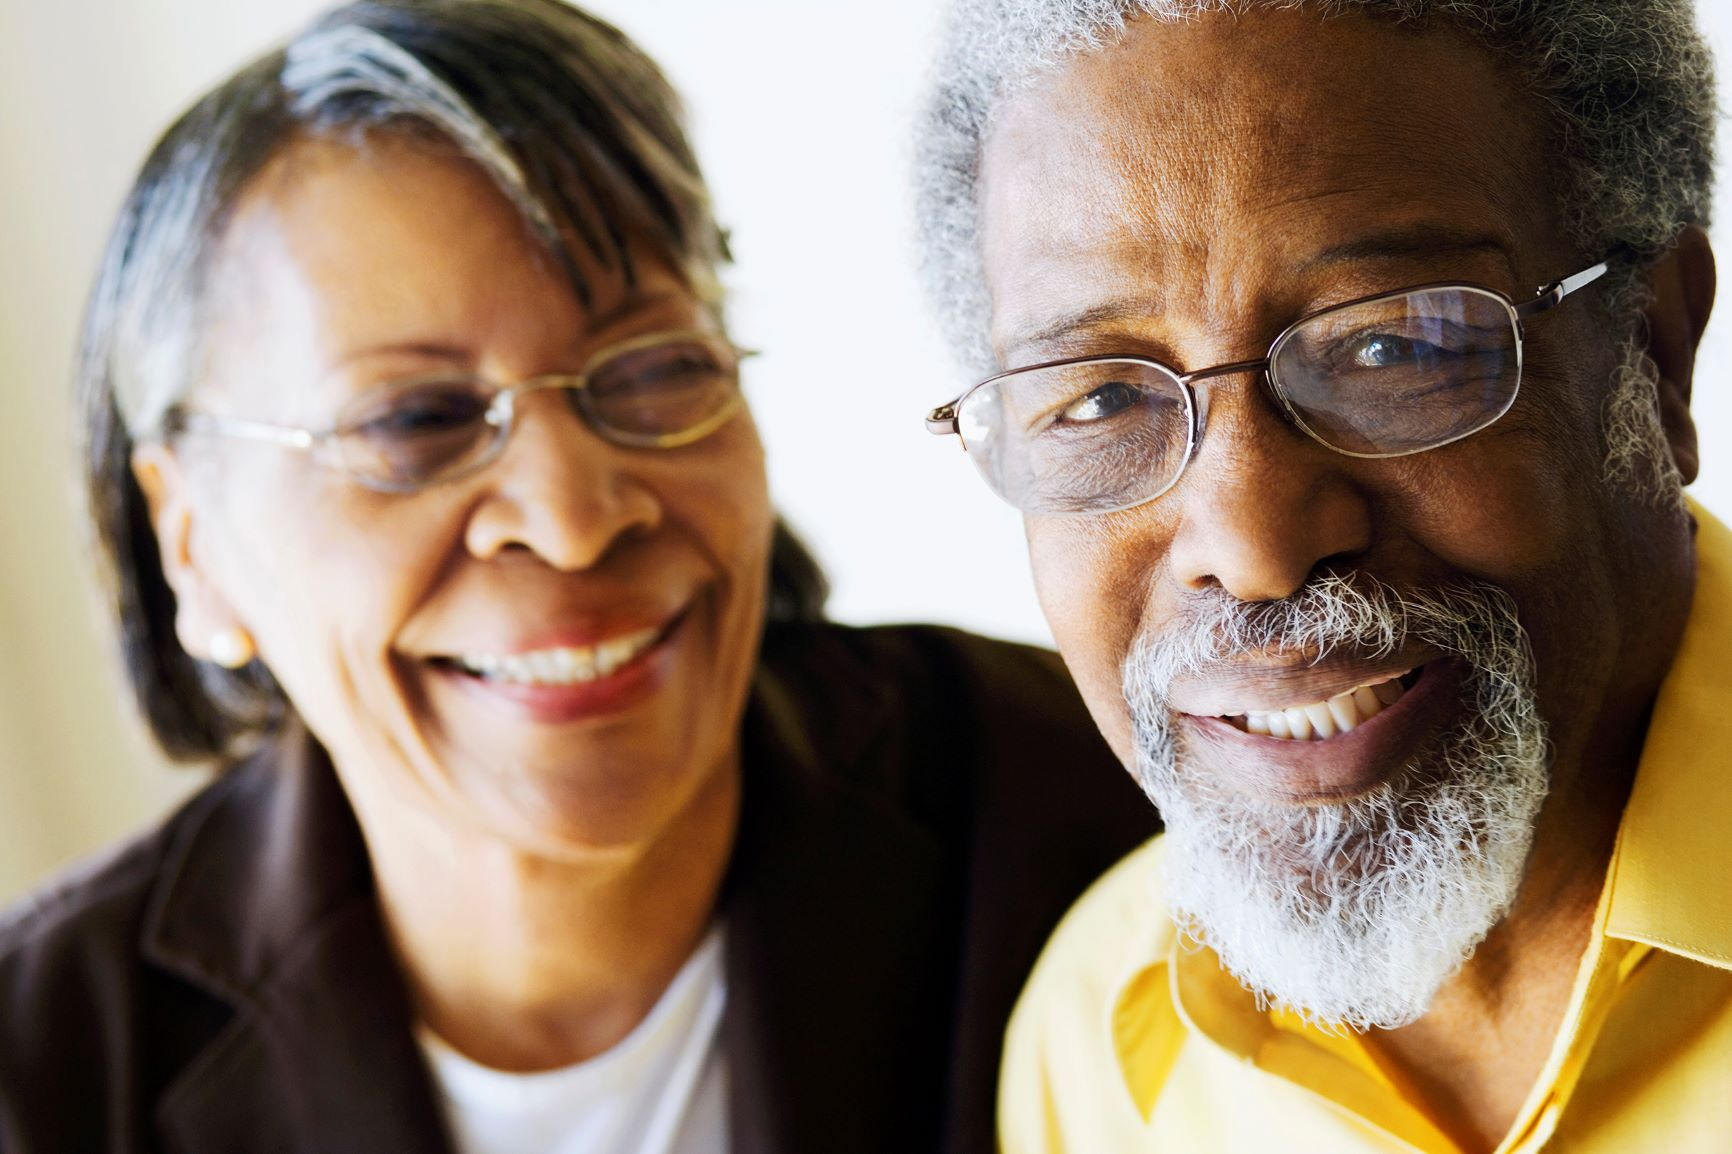 Older smiling man and woman